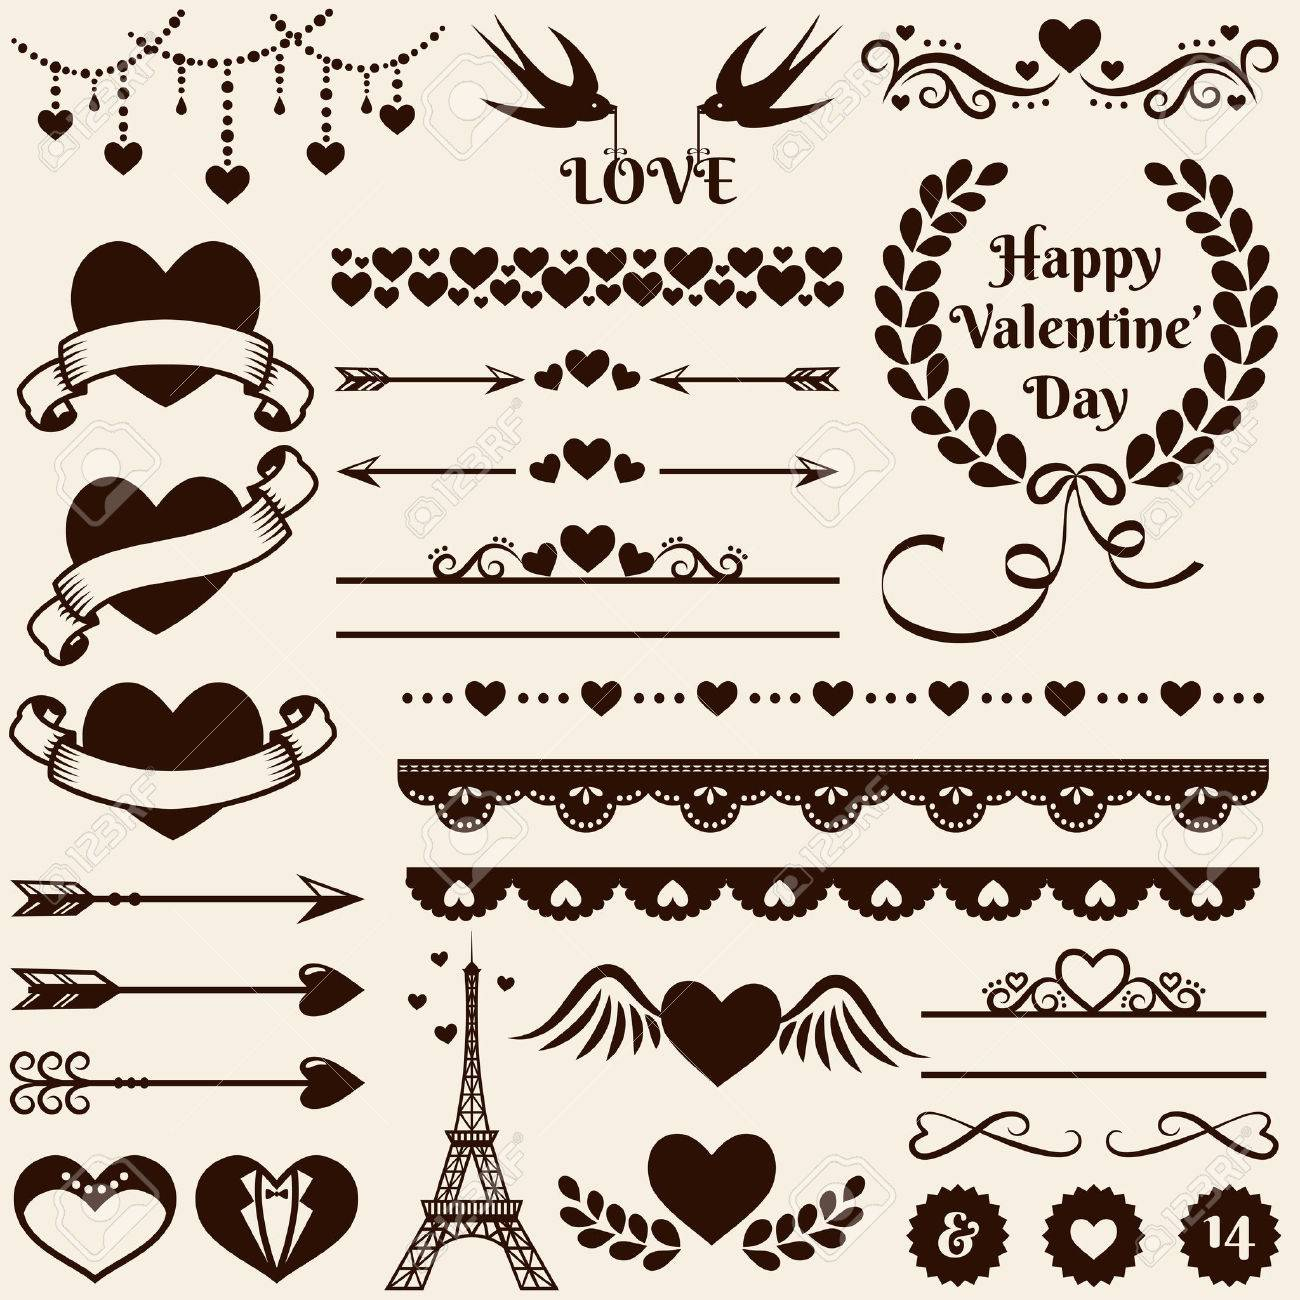 Love romance and wedding decorations set collection of elements love romance and wedding decorations set collection of elements for valentines greeting cards stopboris Choice Image